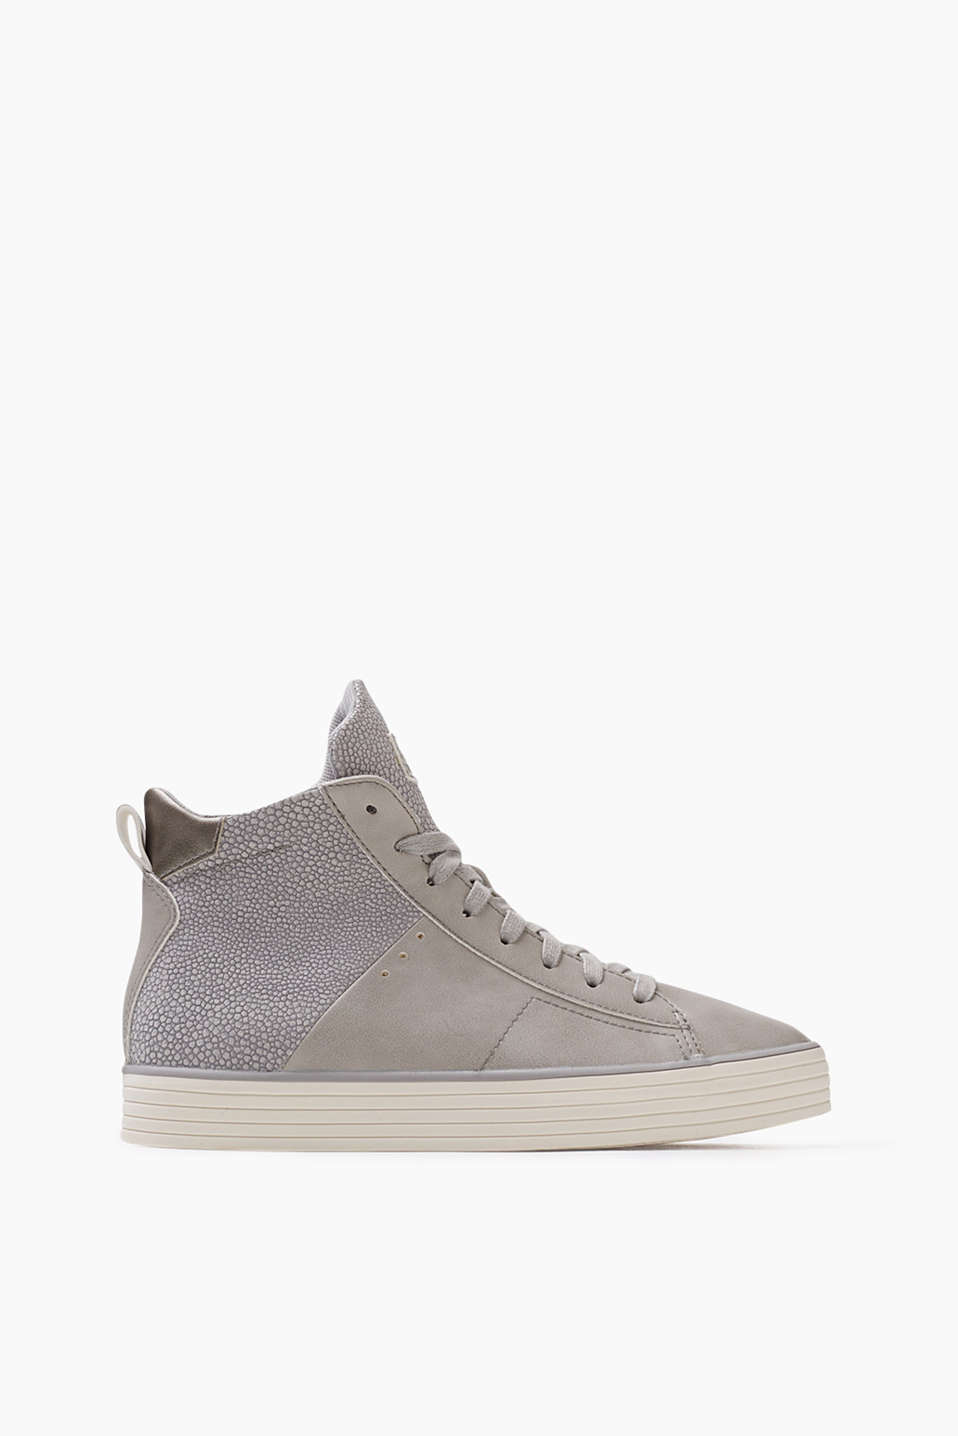 In a sporty, modern trainer style: High-top trainers in smooth imitation leather and a reptile look, with a practical inside zip